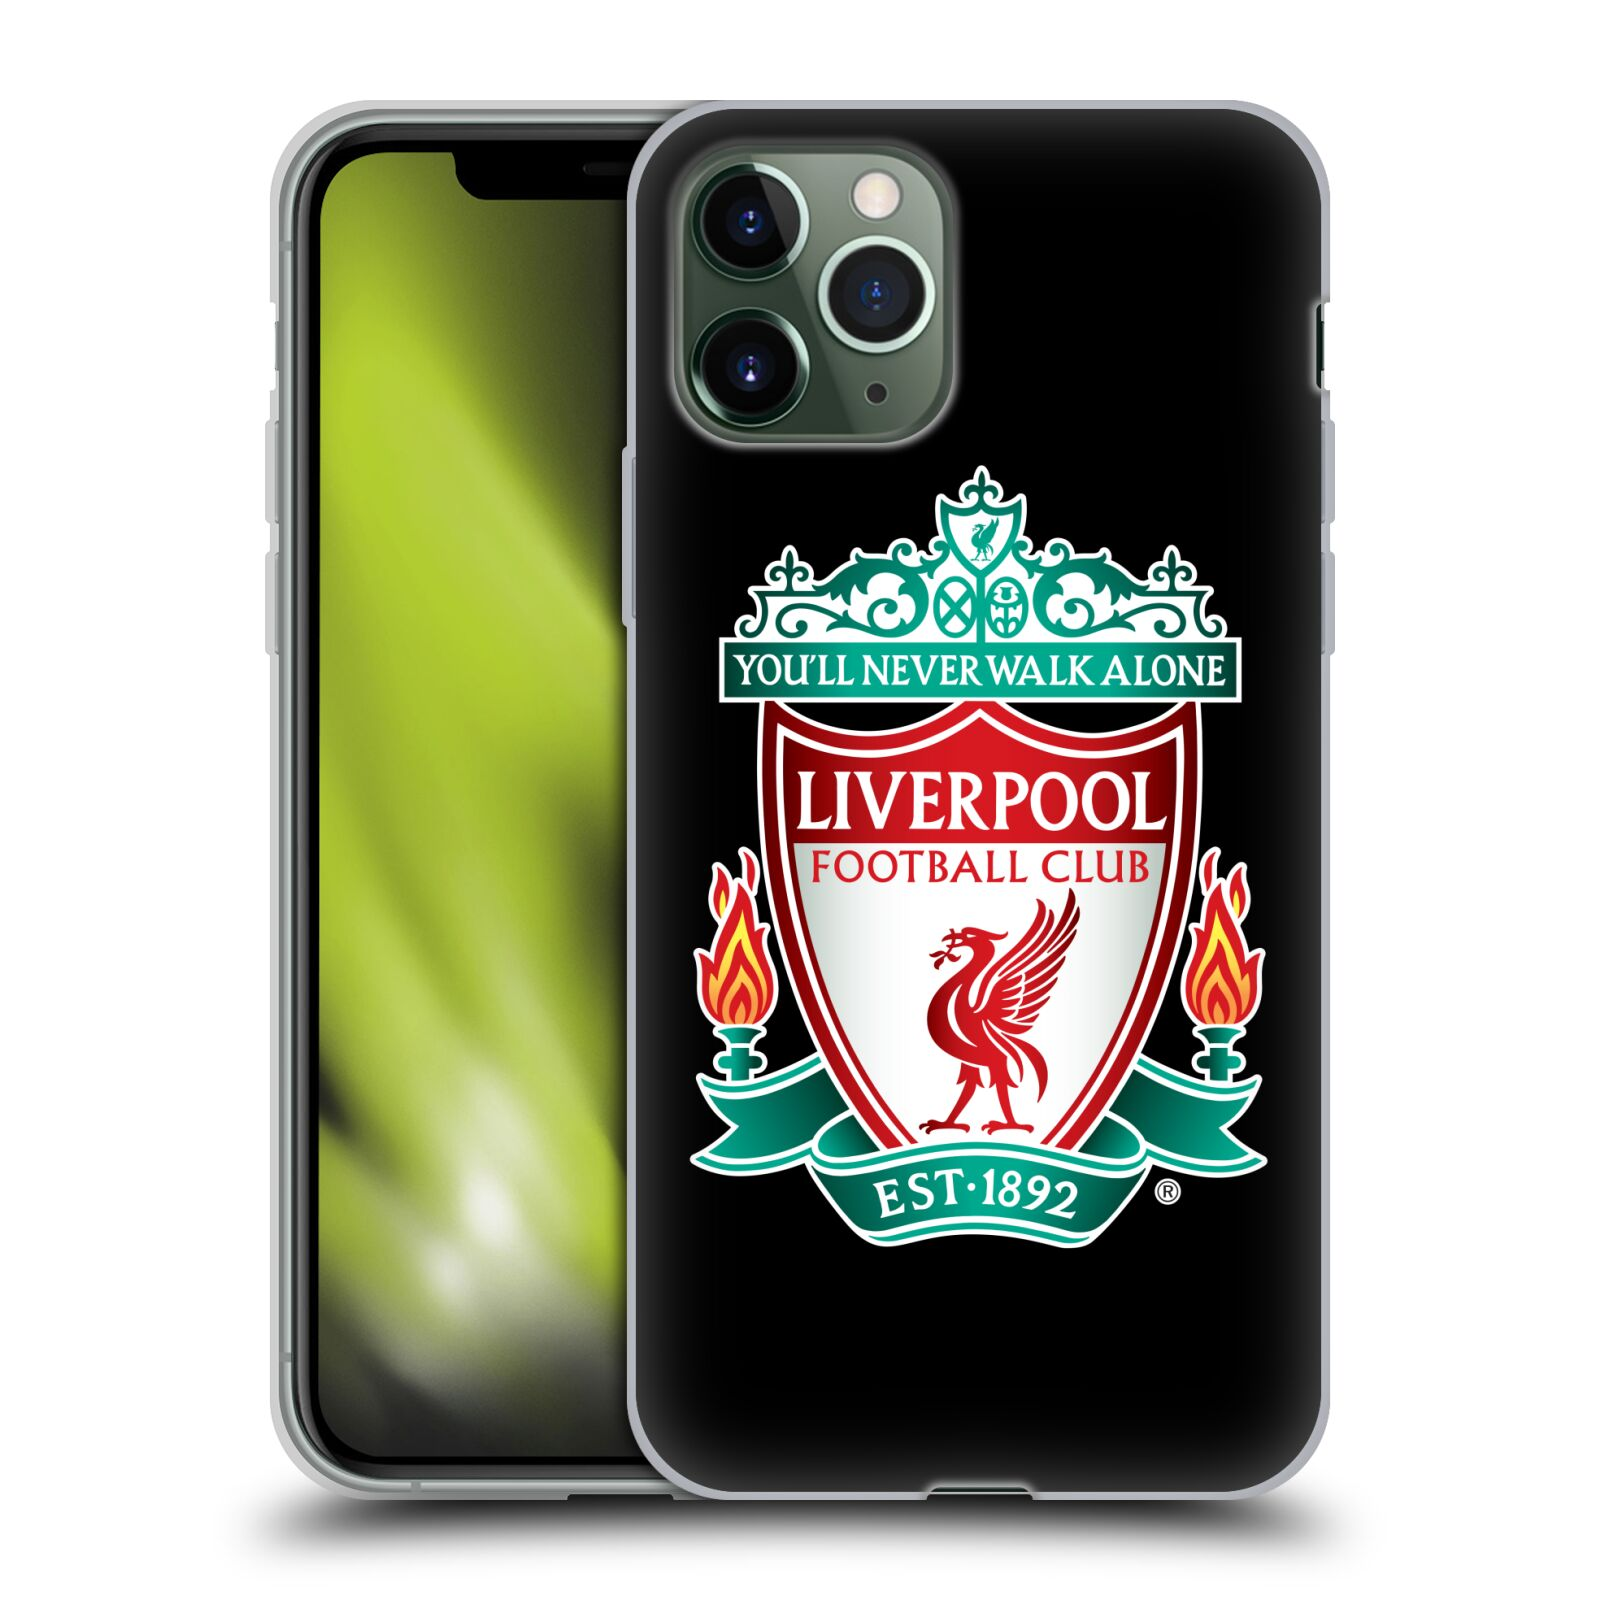 kožené krytu na iphone 8 plus | Silikonové pouzdro na mobil Apple iPhone 11 Pro - Head Case - ZNAK LIVERPOOL FC OFFICIAL BLACK